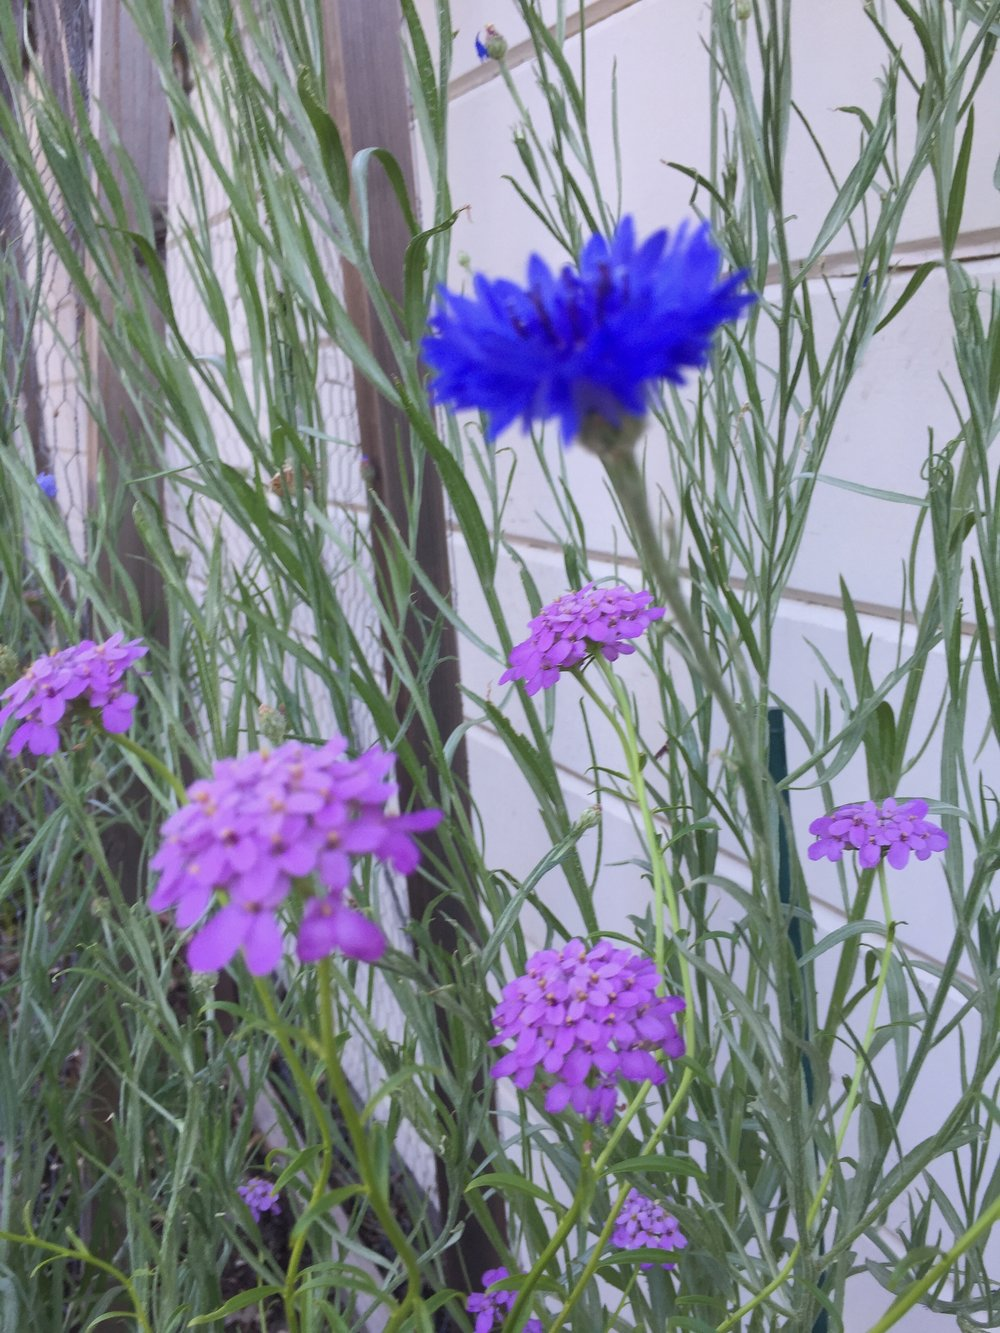 Heirloom cornflowers 'Blue Boy' with a flower I cannot figure out, either a verbena or a wallflower